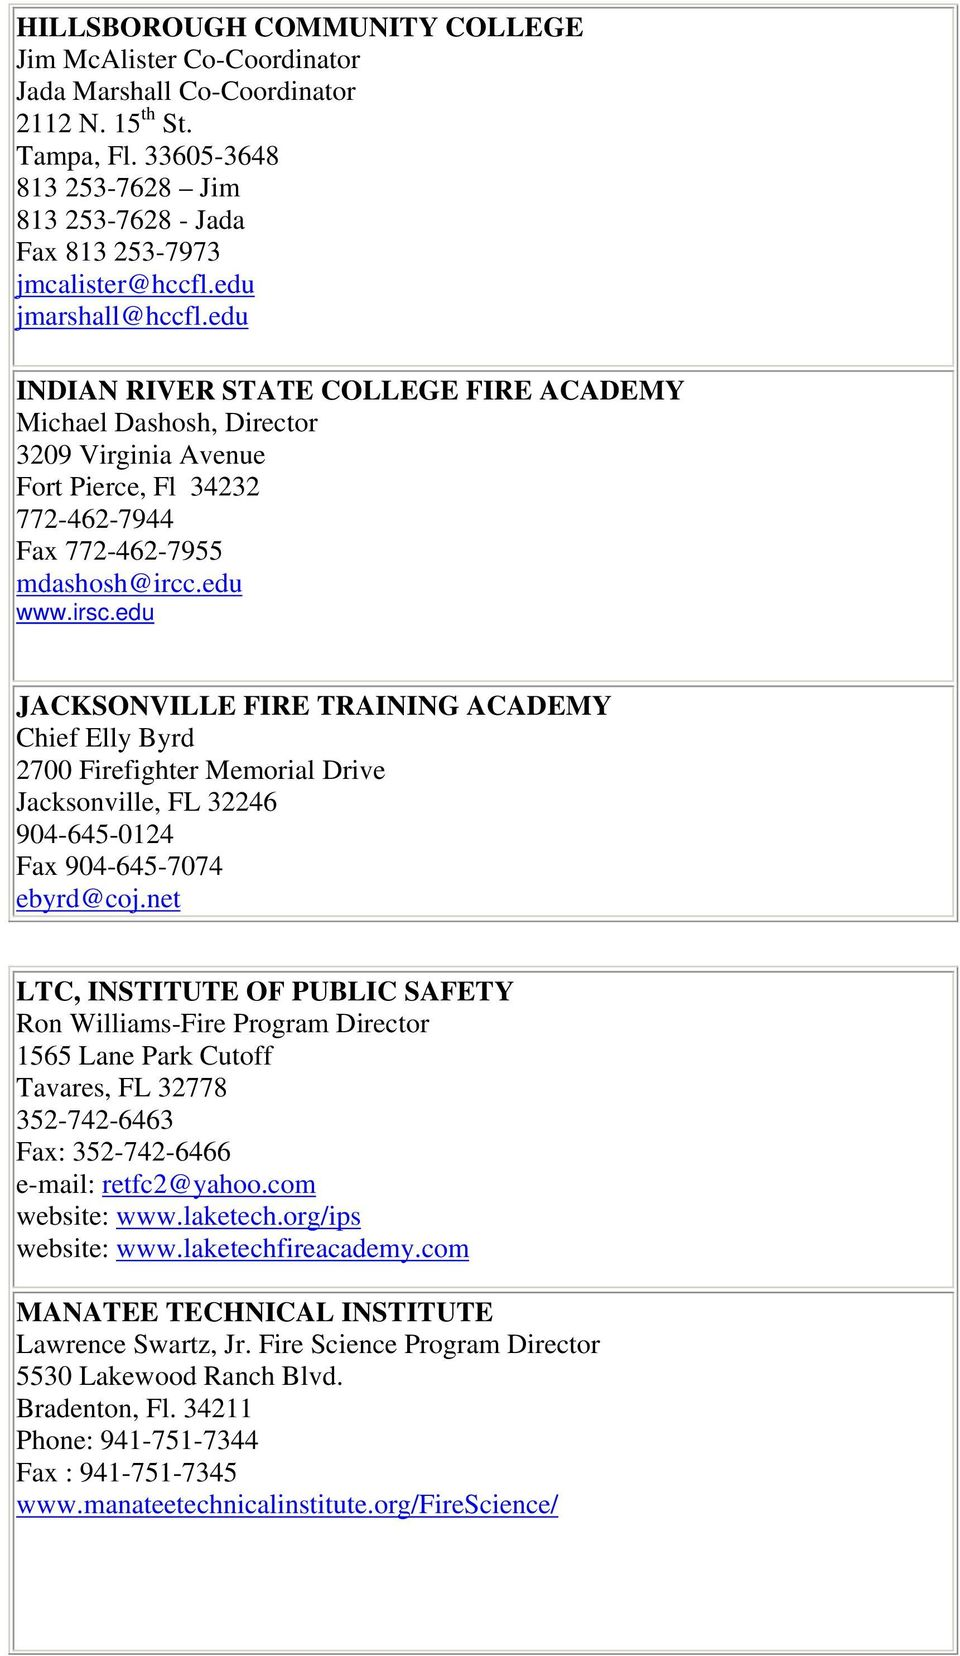 edu JACKSONVILLE FIRE TRAINING ACADEMY Chief Elly Byrd 2700 Firefighter Memorial Drive Jacksonville, FL 32246 904-645-0124 Fax 904-645-7074 ebyrd@coj.